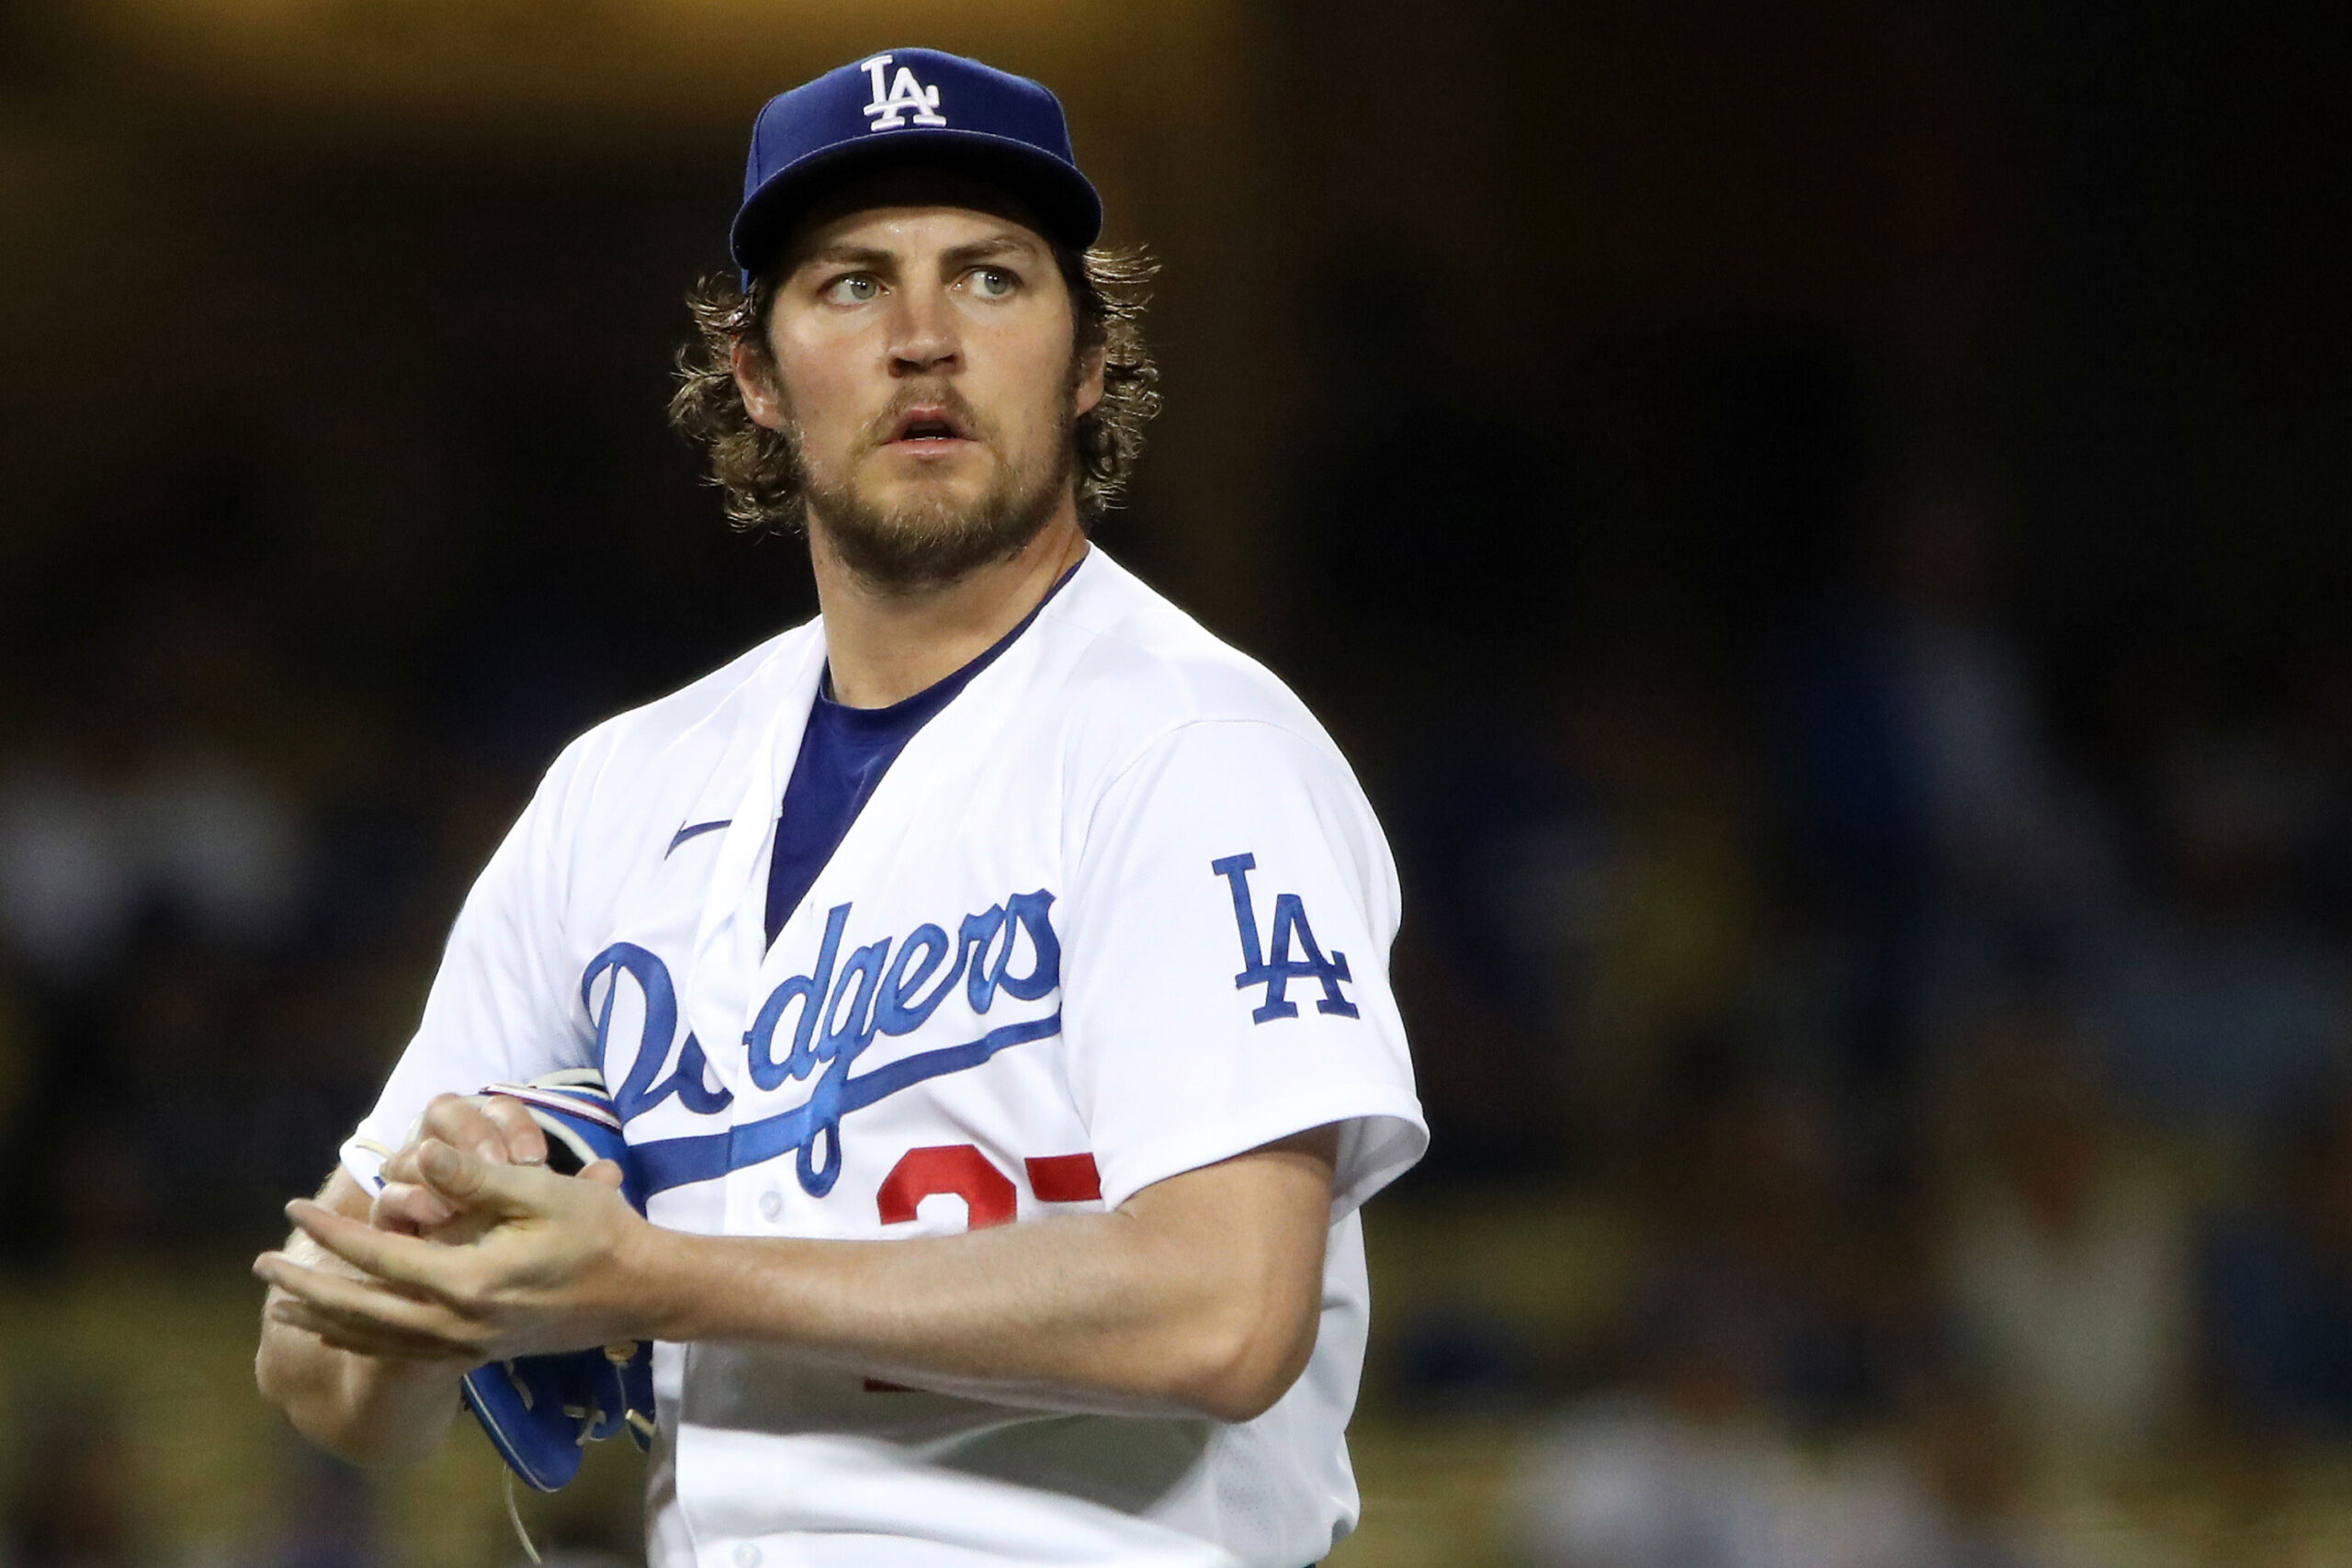 <i>Katelyn Mulcahy/Getty Images</i><br/>Los Angeles Dodgers pitcher Trevor Bauer's administrative leave has been reportedly extended through the rest of the season